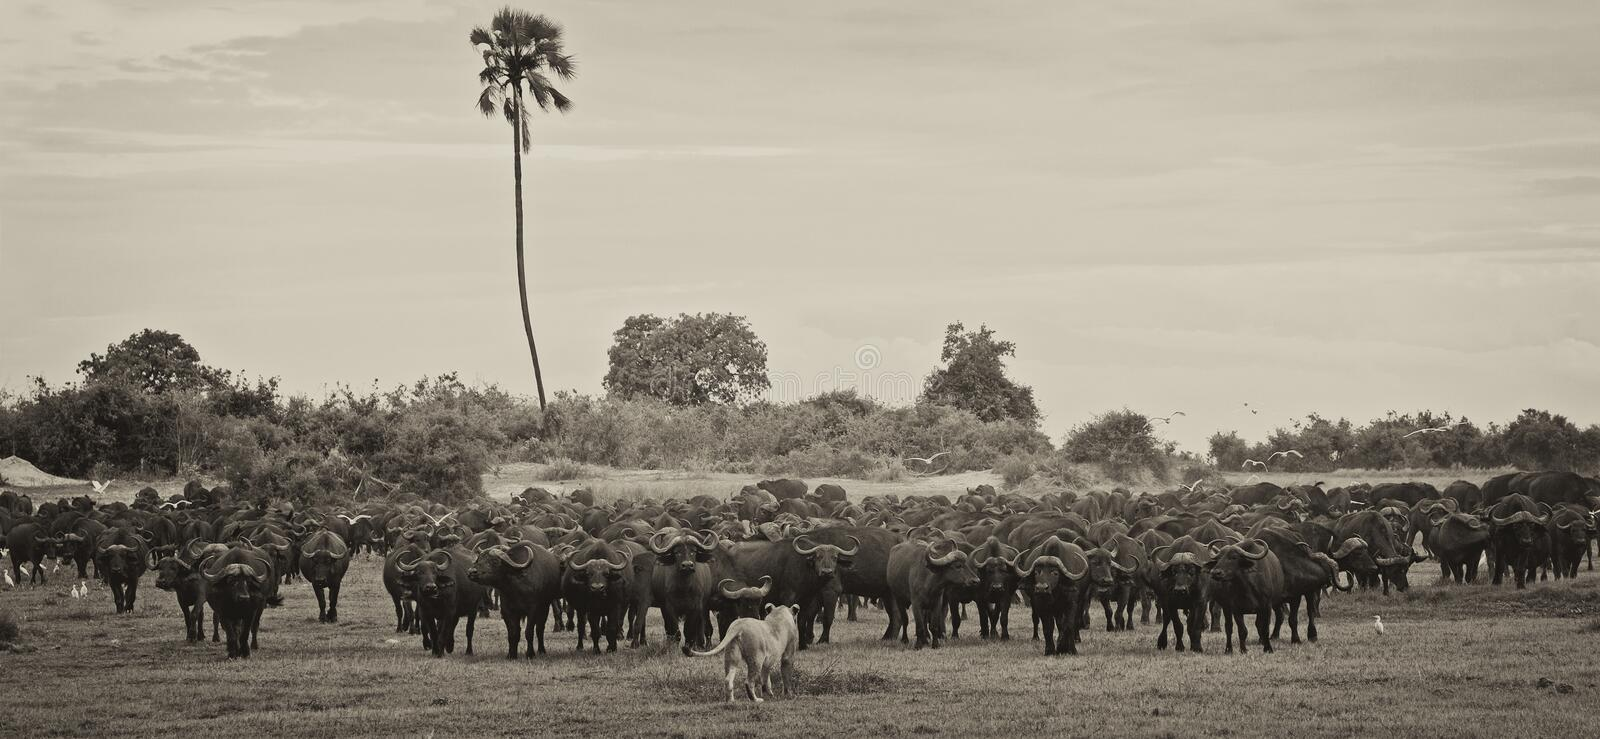 Brave Lioness. A single Lioness in front of a wall of Buffalo, Okavango Delta, Botswana royalty free stock images